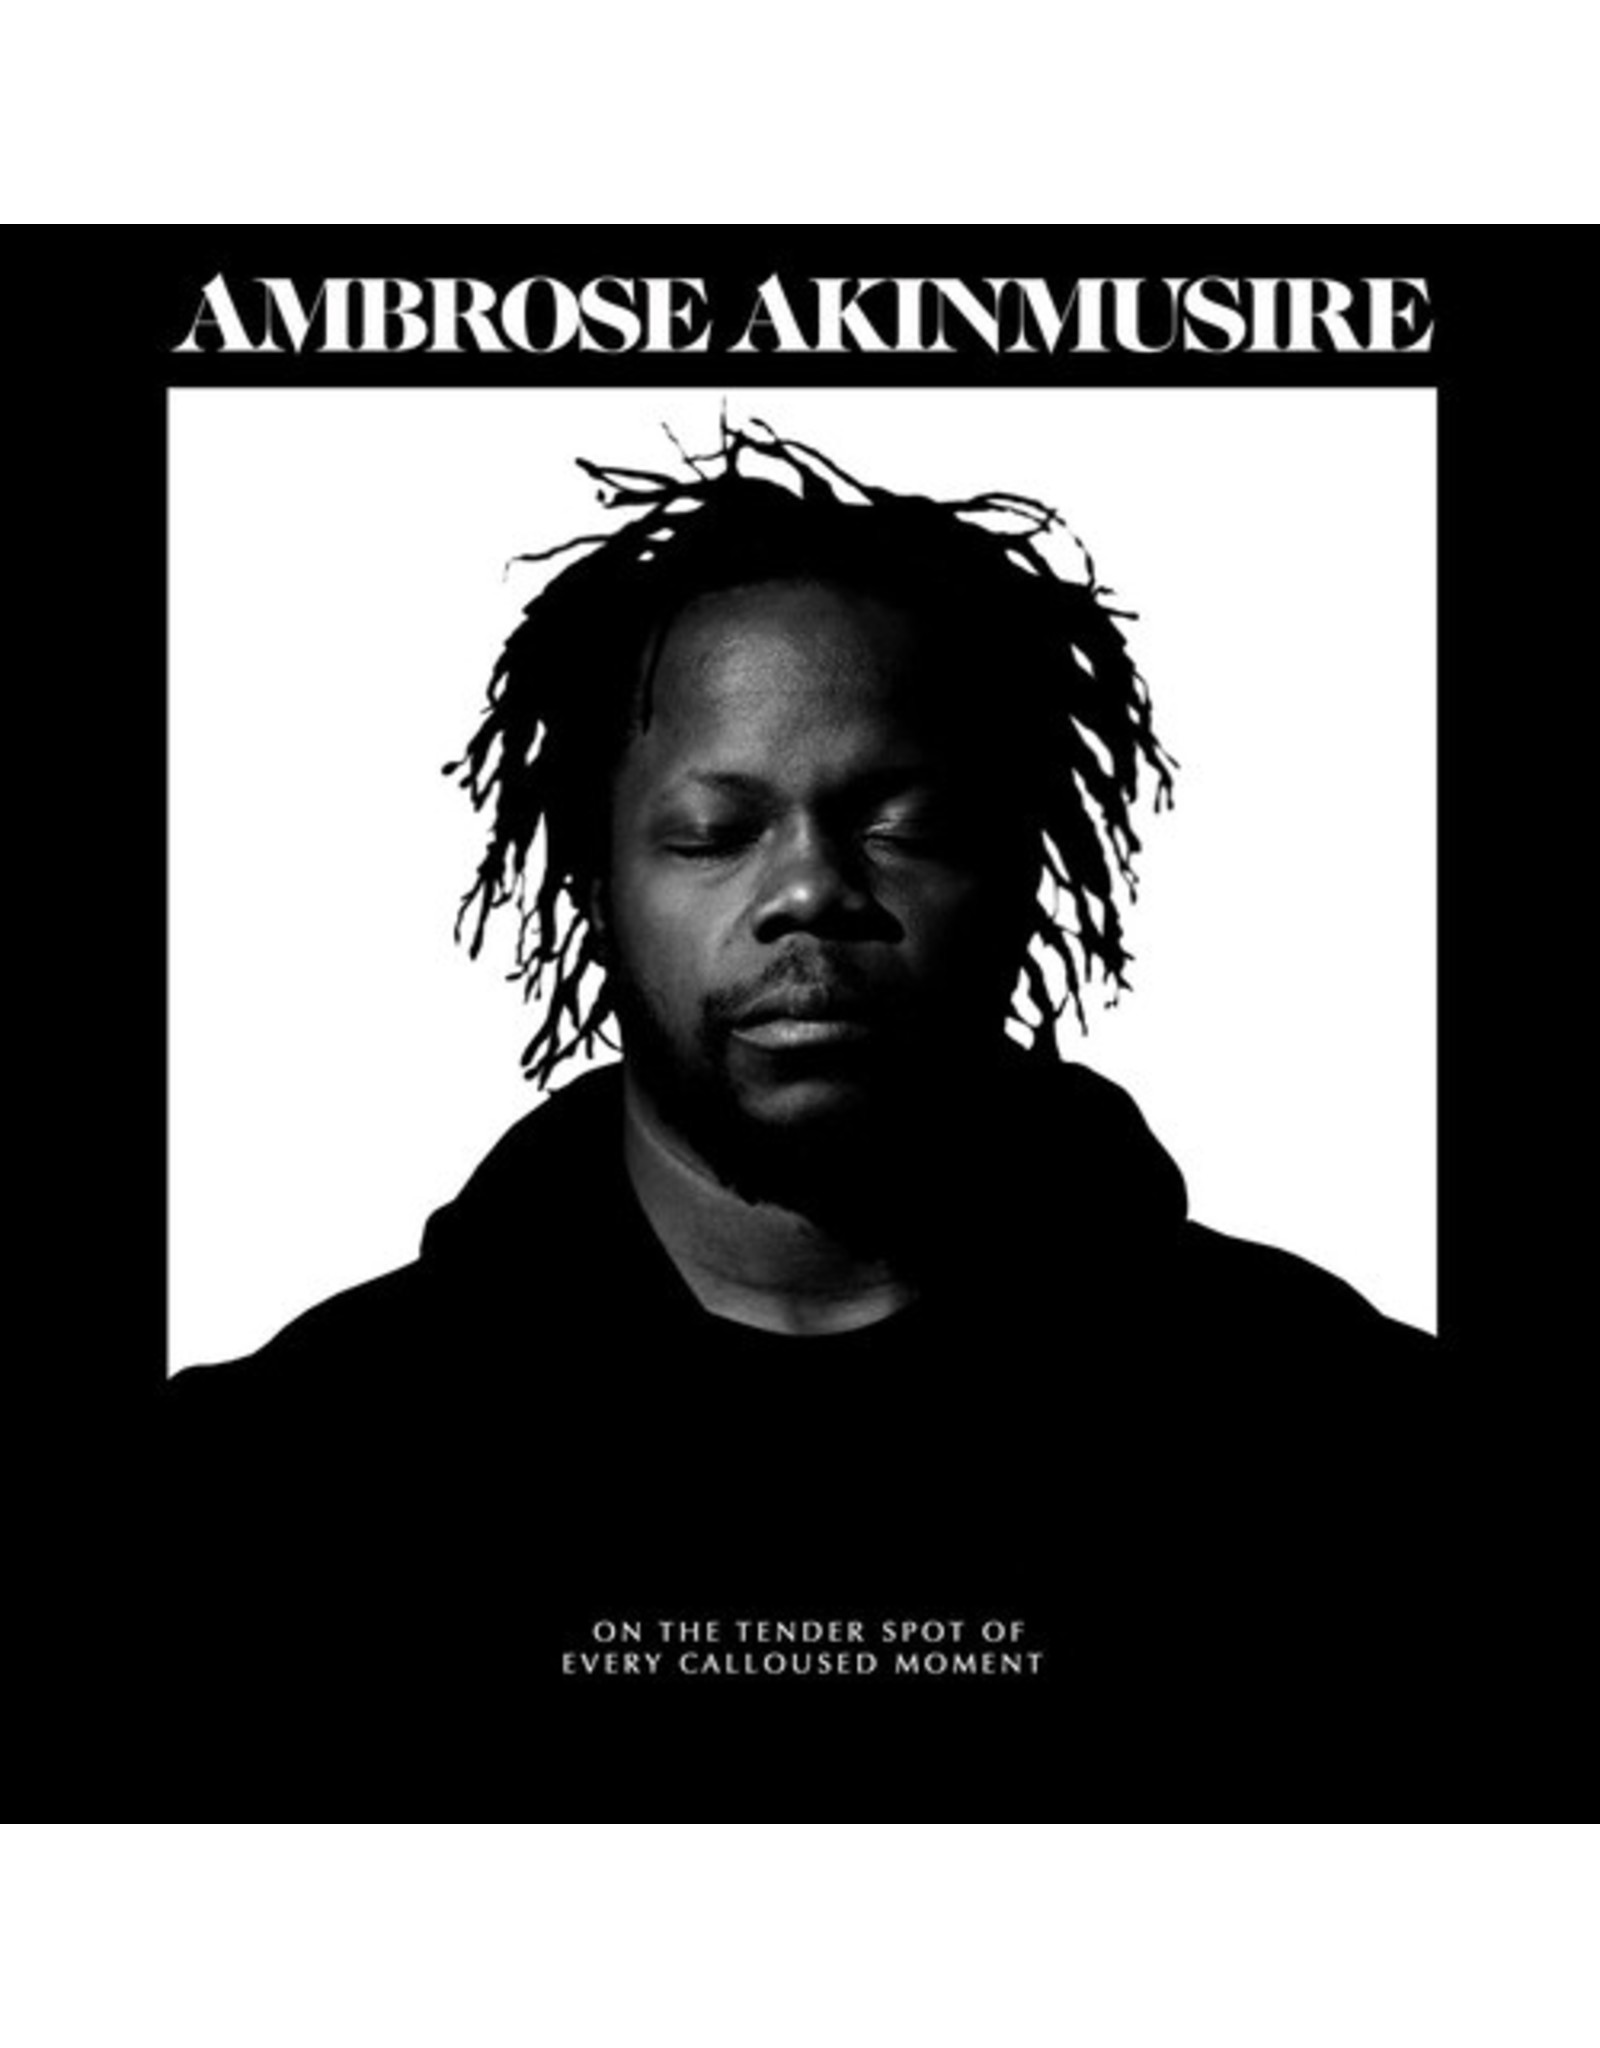 New Vinyl Ambrose Akinmusire - On The Tender Spot Of Every Calloused Moment LP